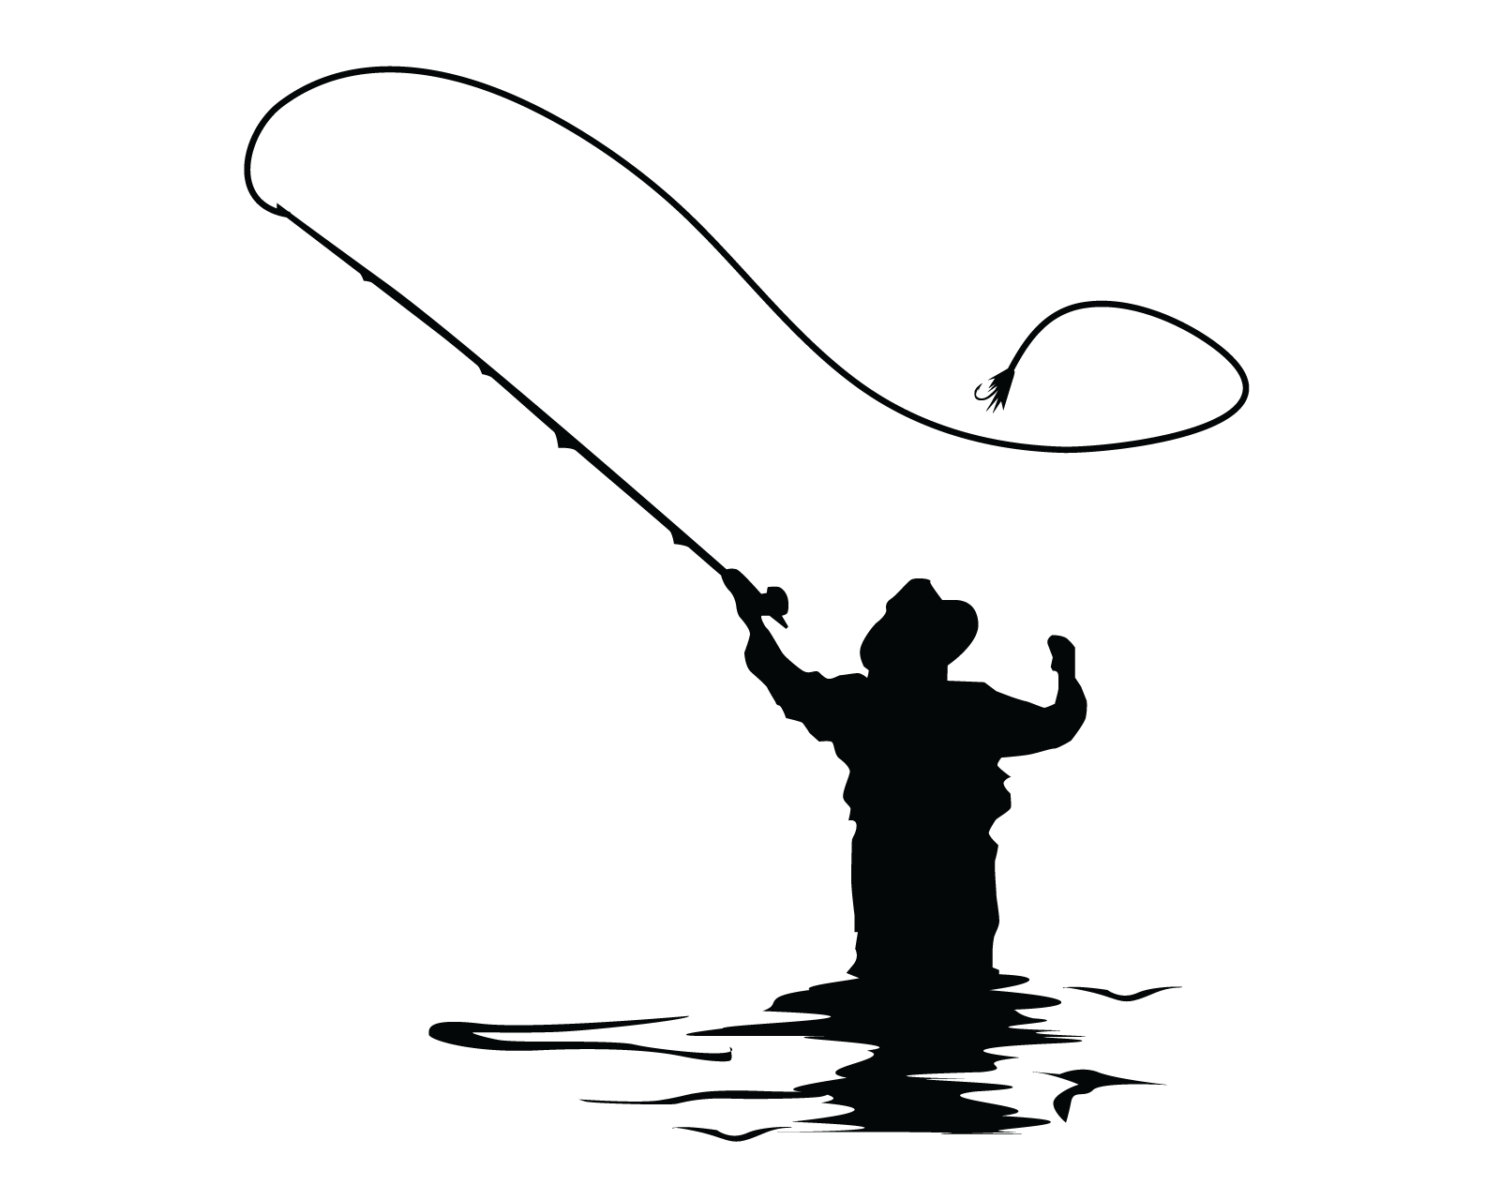 Fisherman clipart silhouette #12